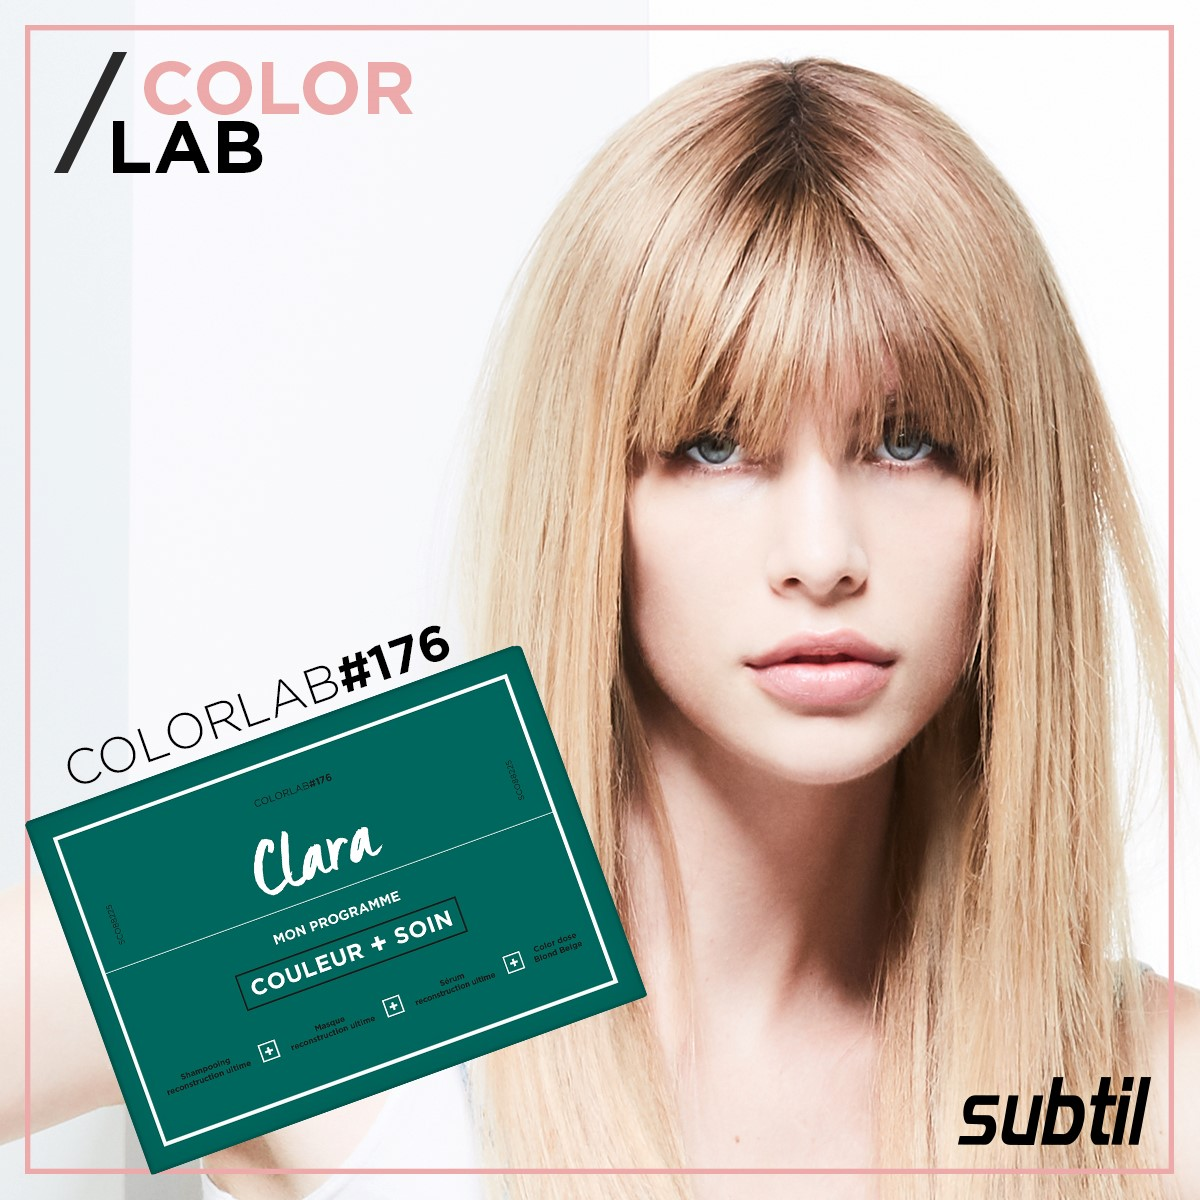 /COLOR LAB